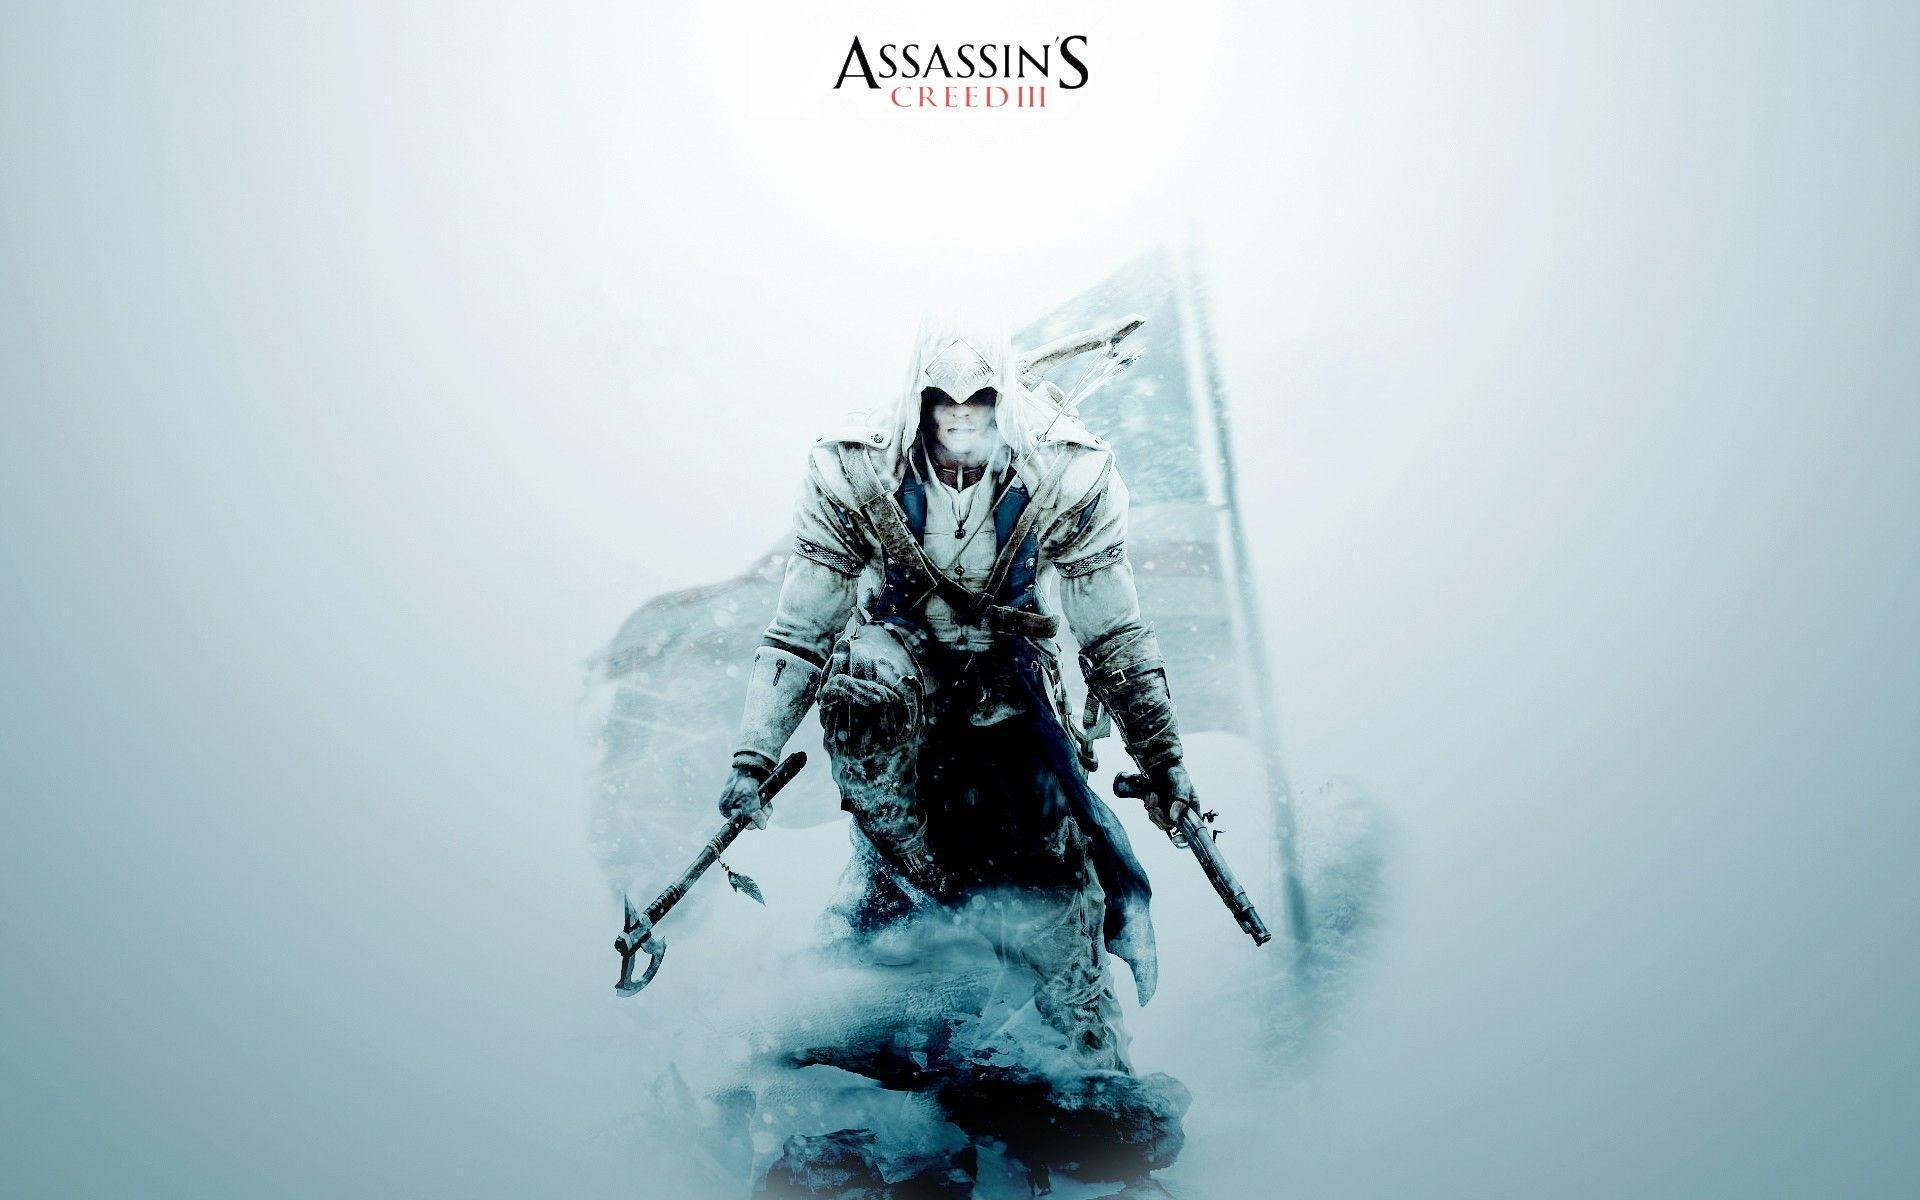 190 Assassin&Creed III Wallpapers